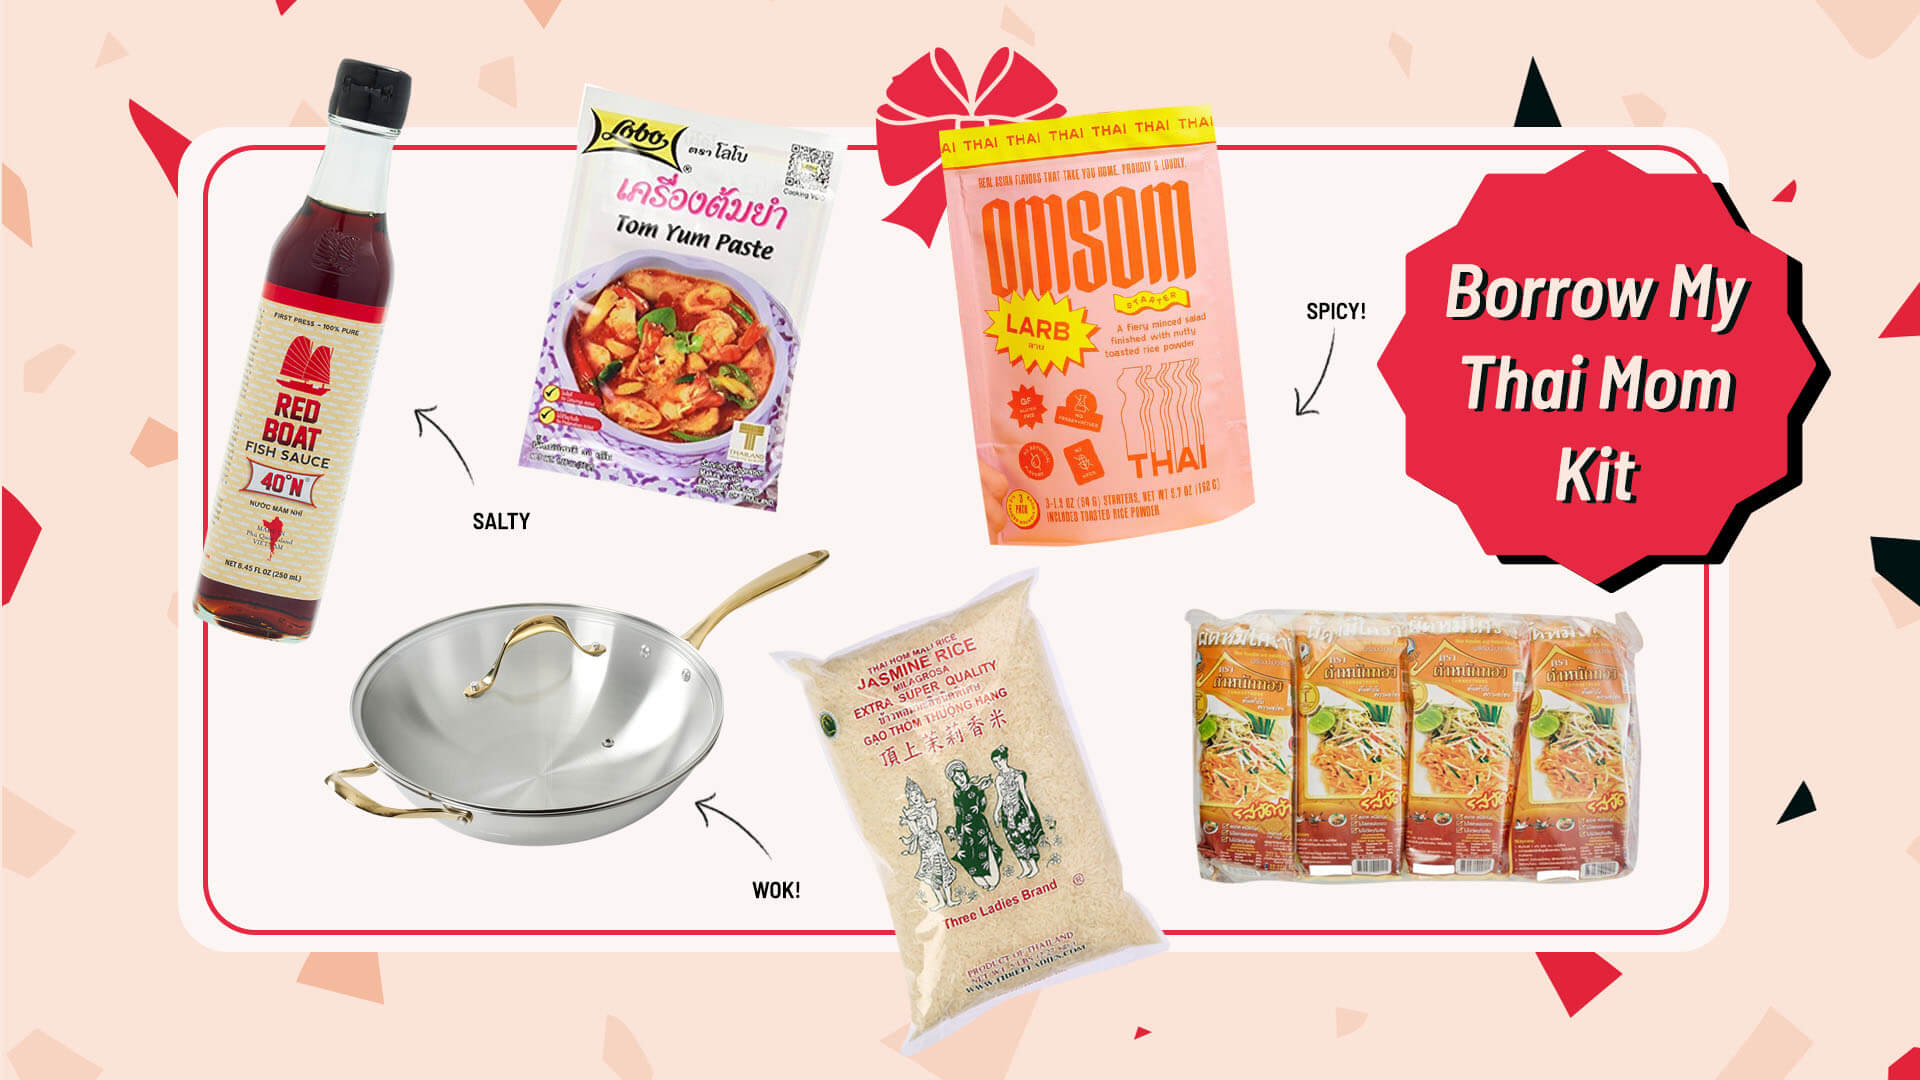 Cravings_2020GiftGuide_Horizontal02-Borrow-My-Thai-Mom-Kit